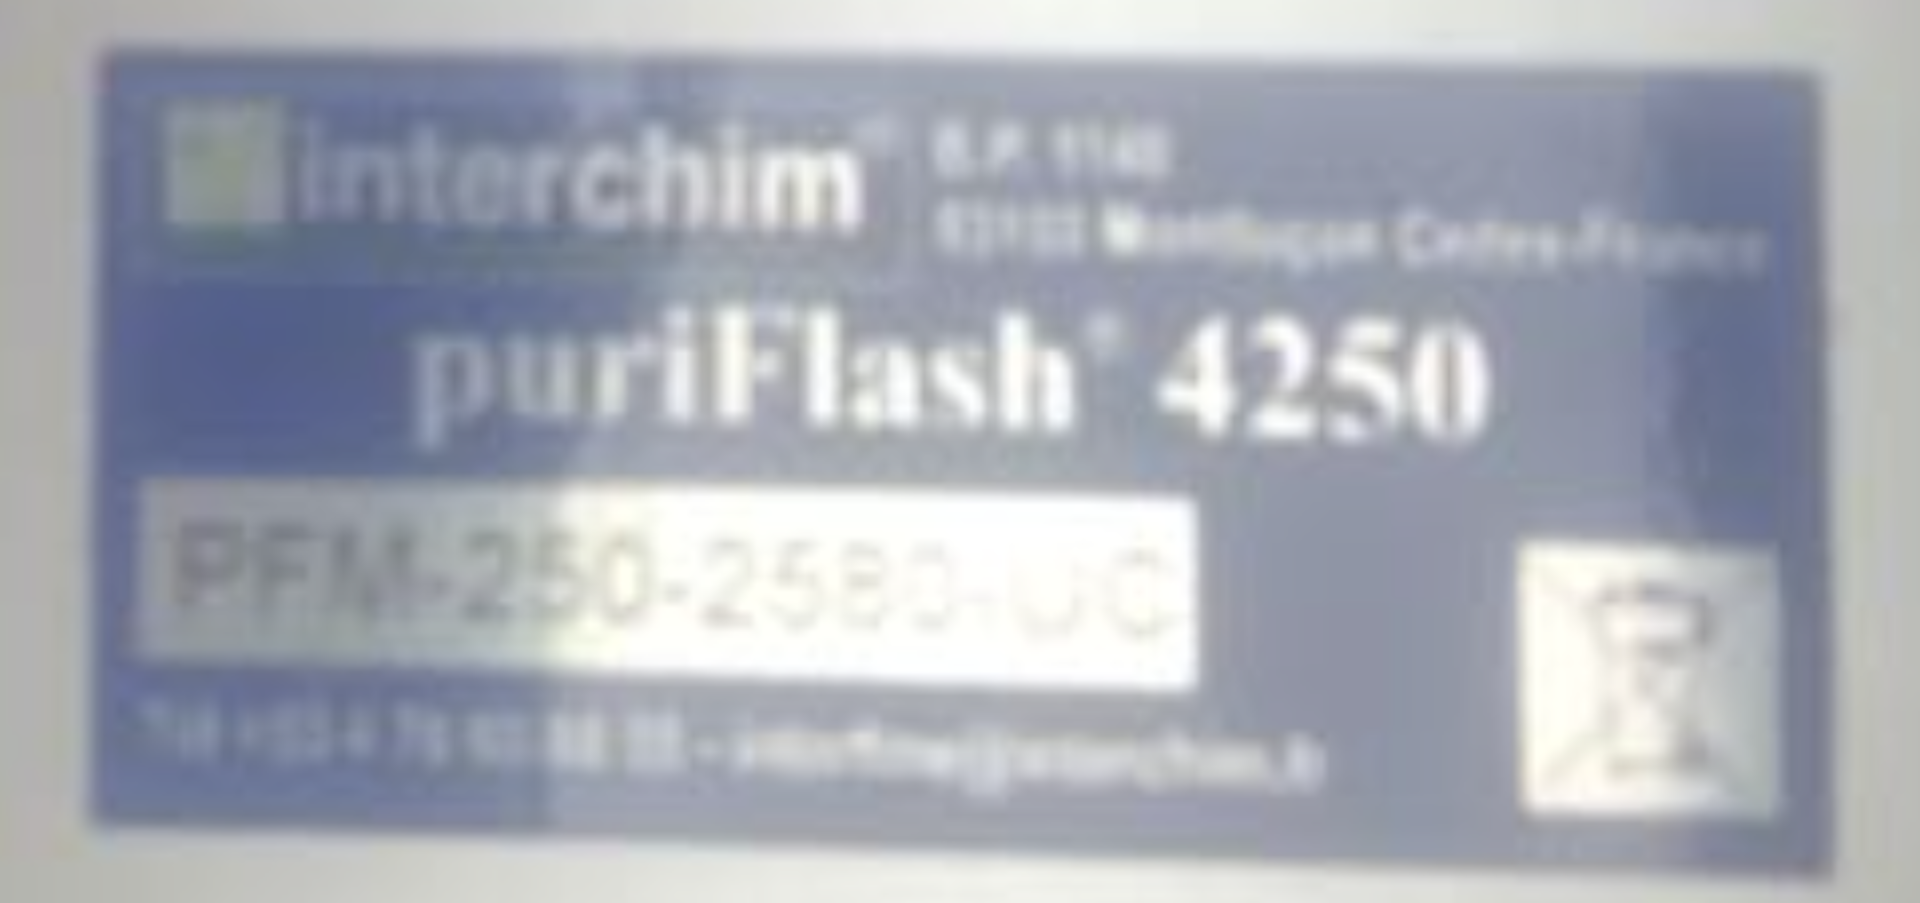 Used- Interchim Purification Prep HPLC, Model PuriFlash 4250. Flash and Prep HPLC in one instrument - Image 6 of 8